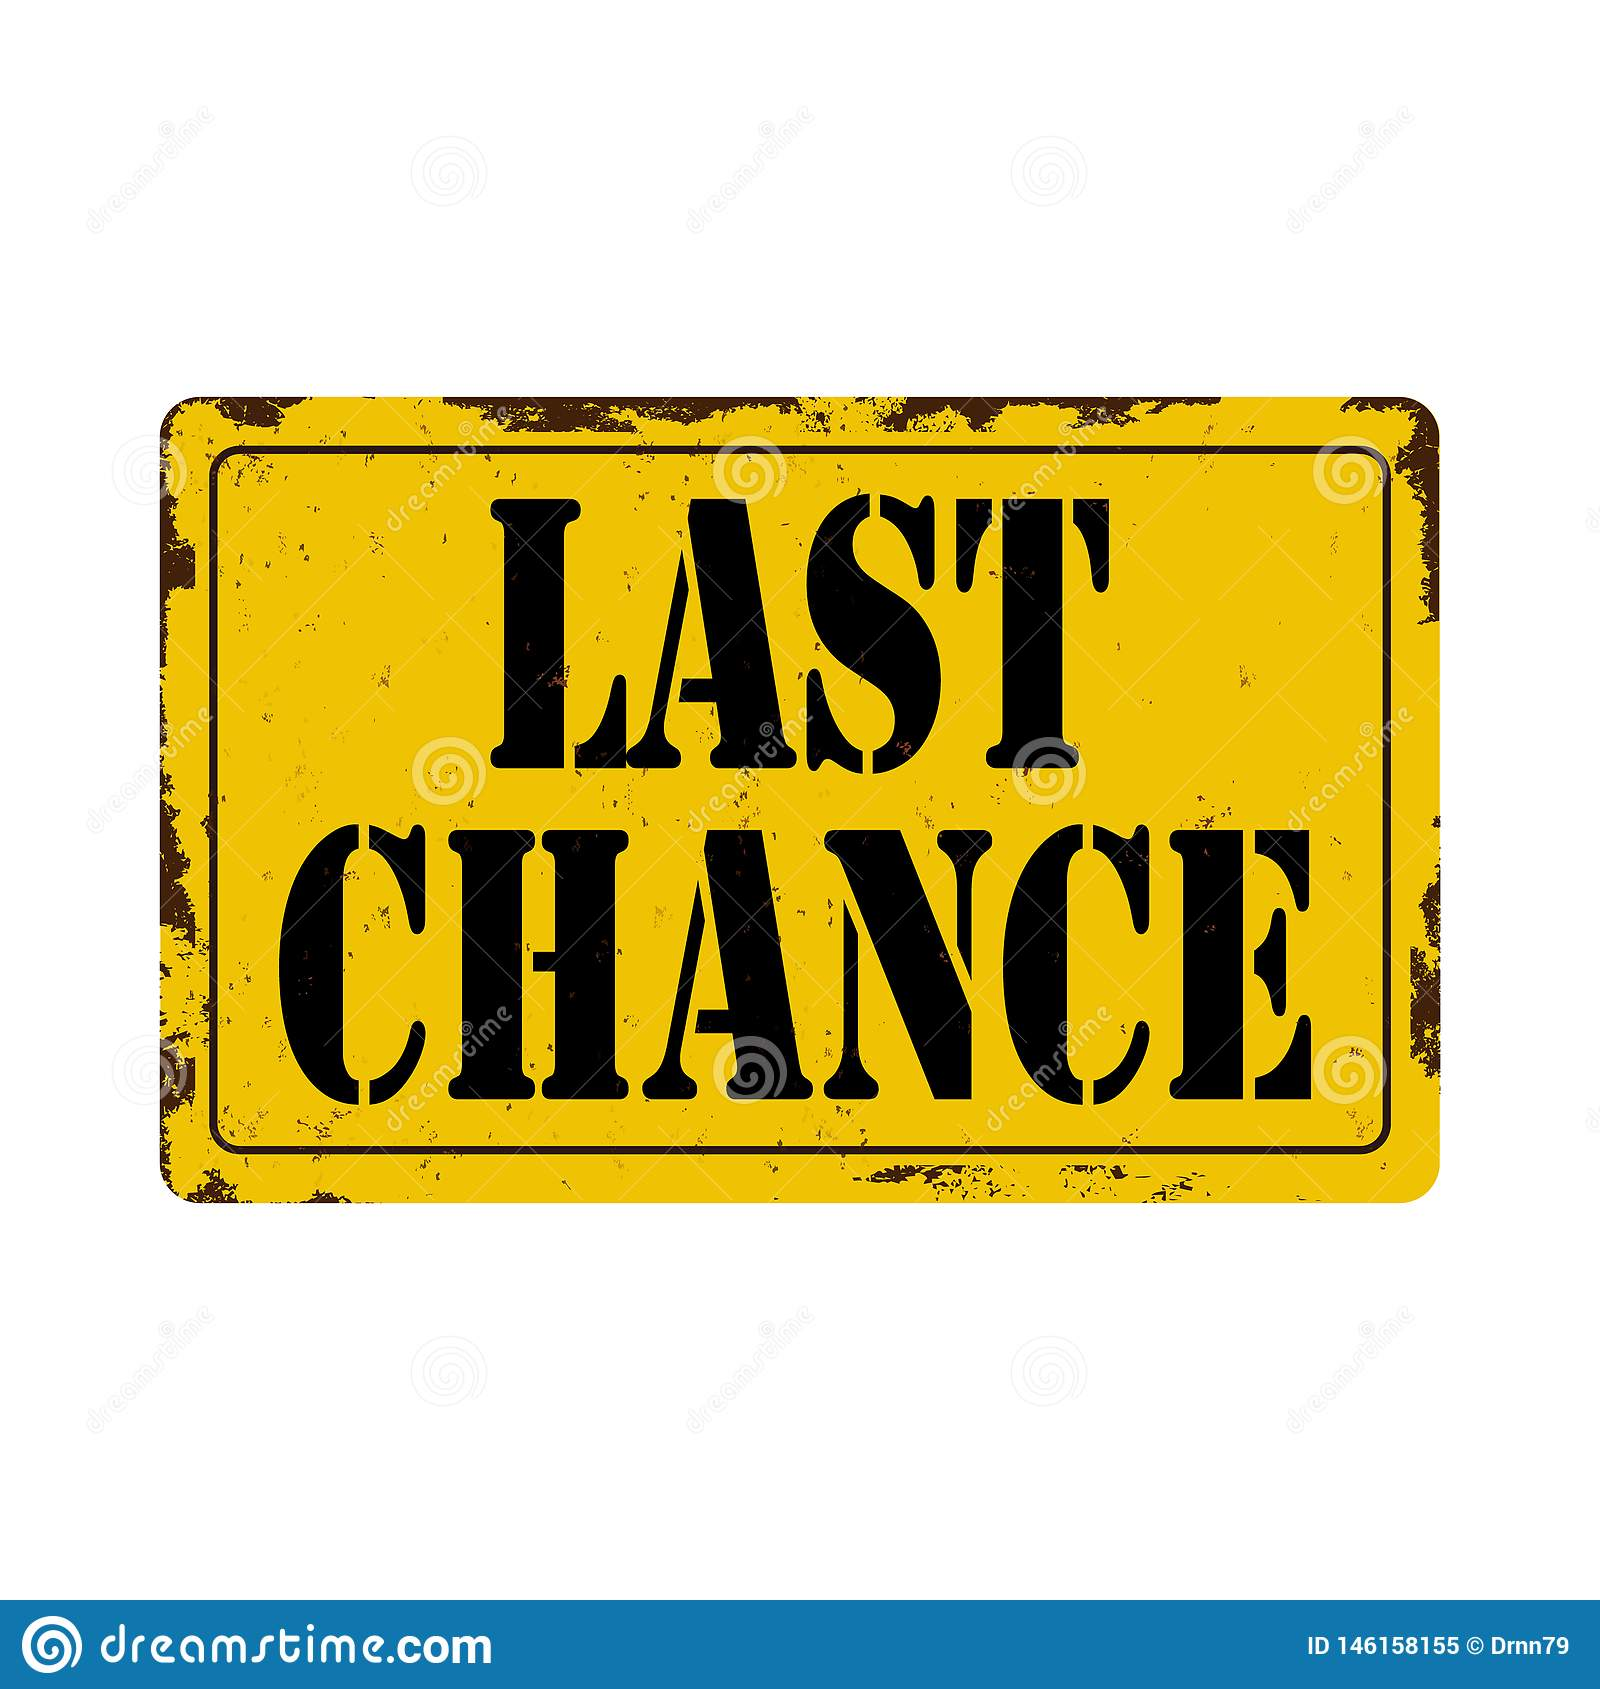 Last chance Antiques vintage rusty metal sign on a white background